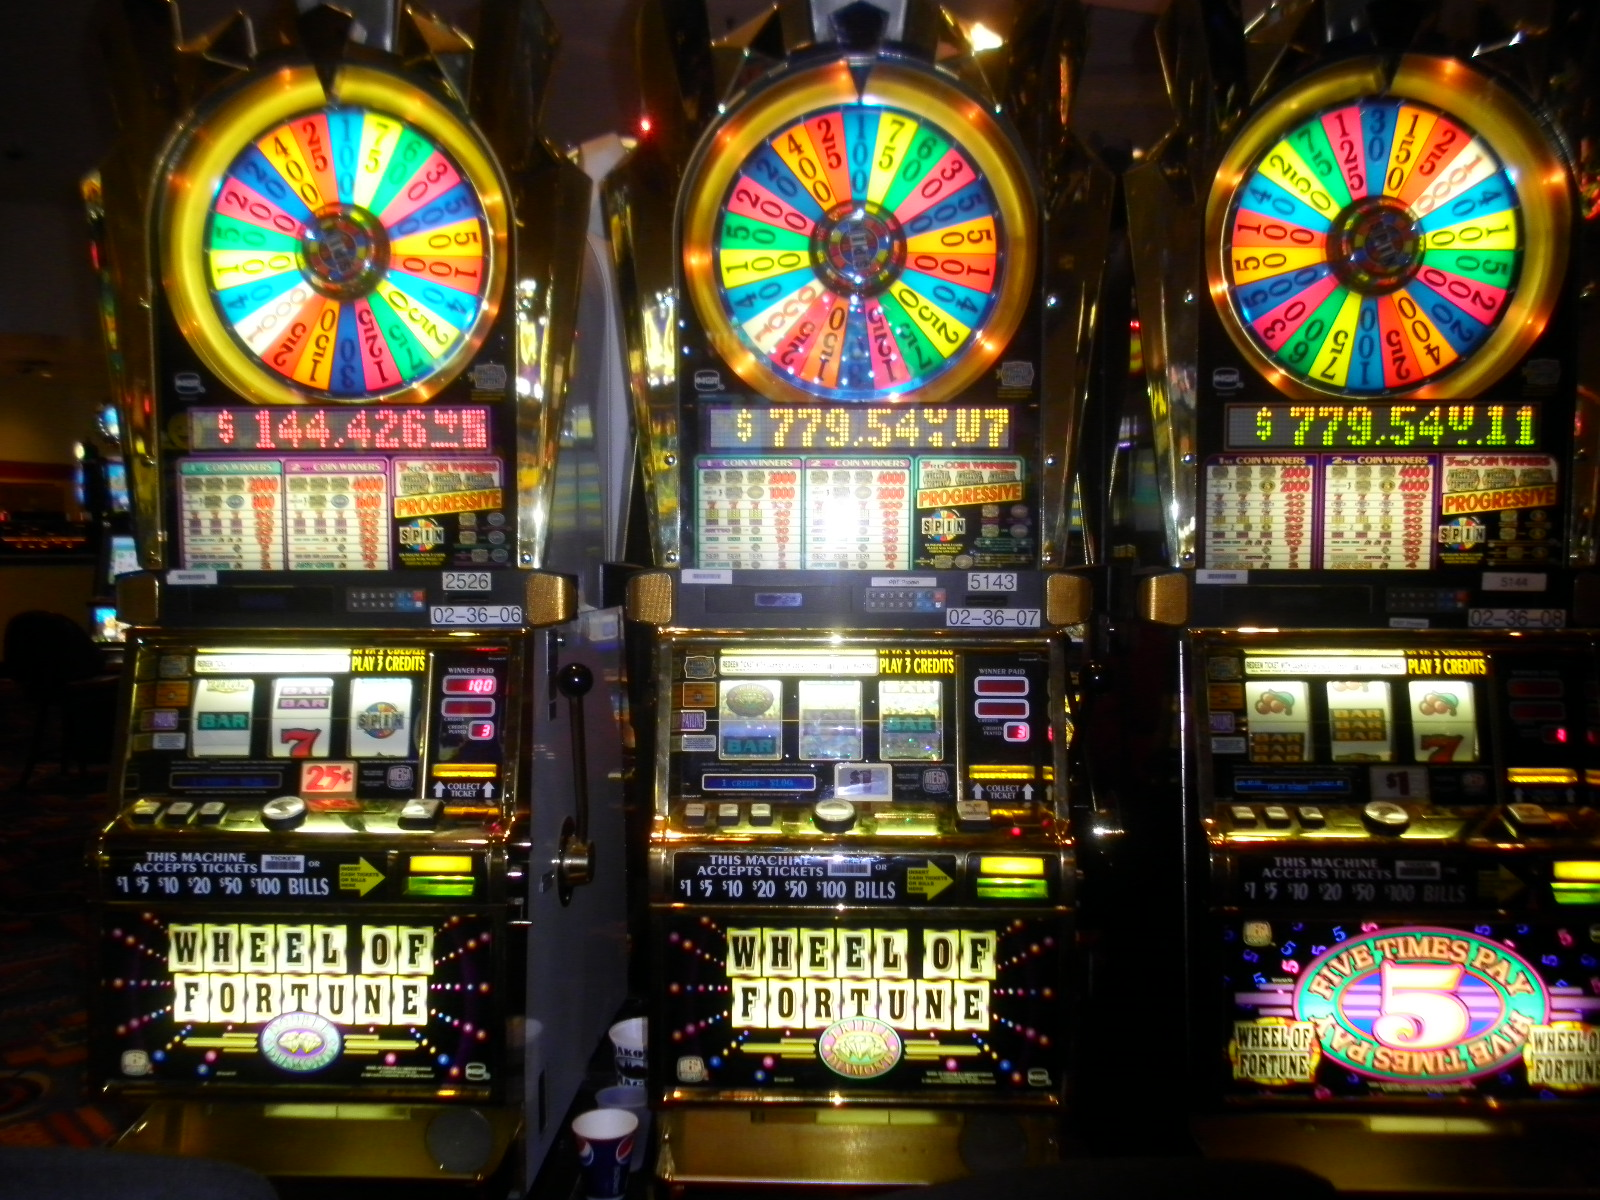 Wheel of fortune online slot machines free doubledown casino facebook free chips